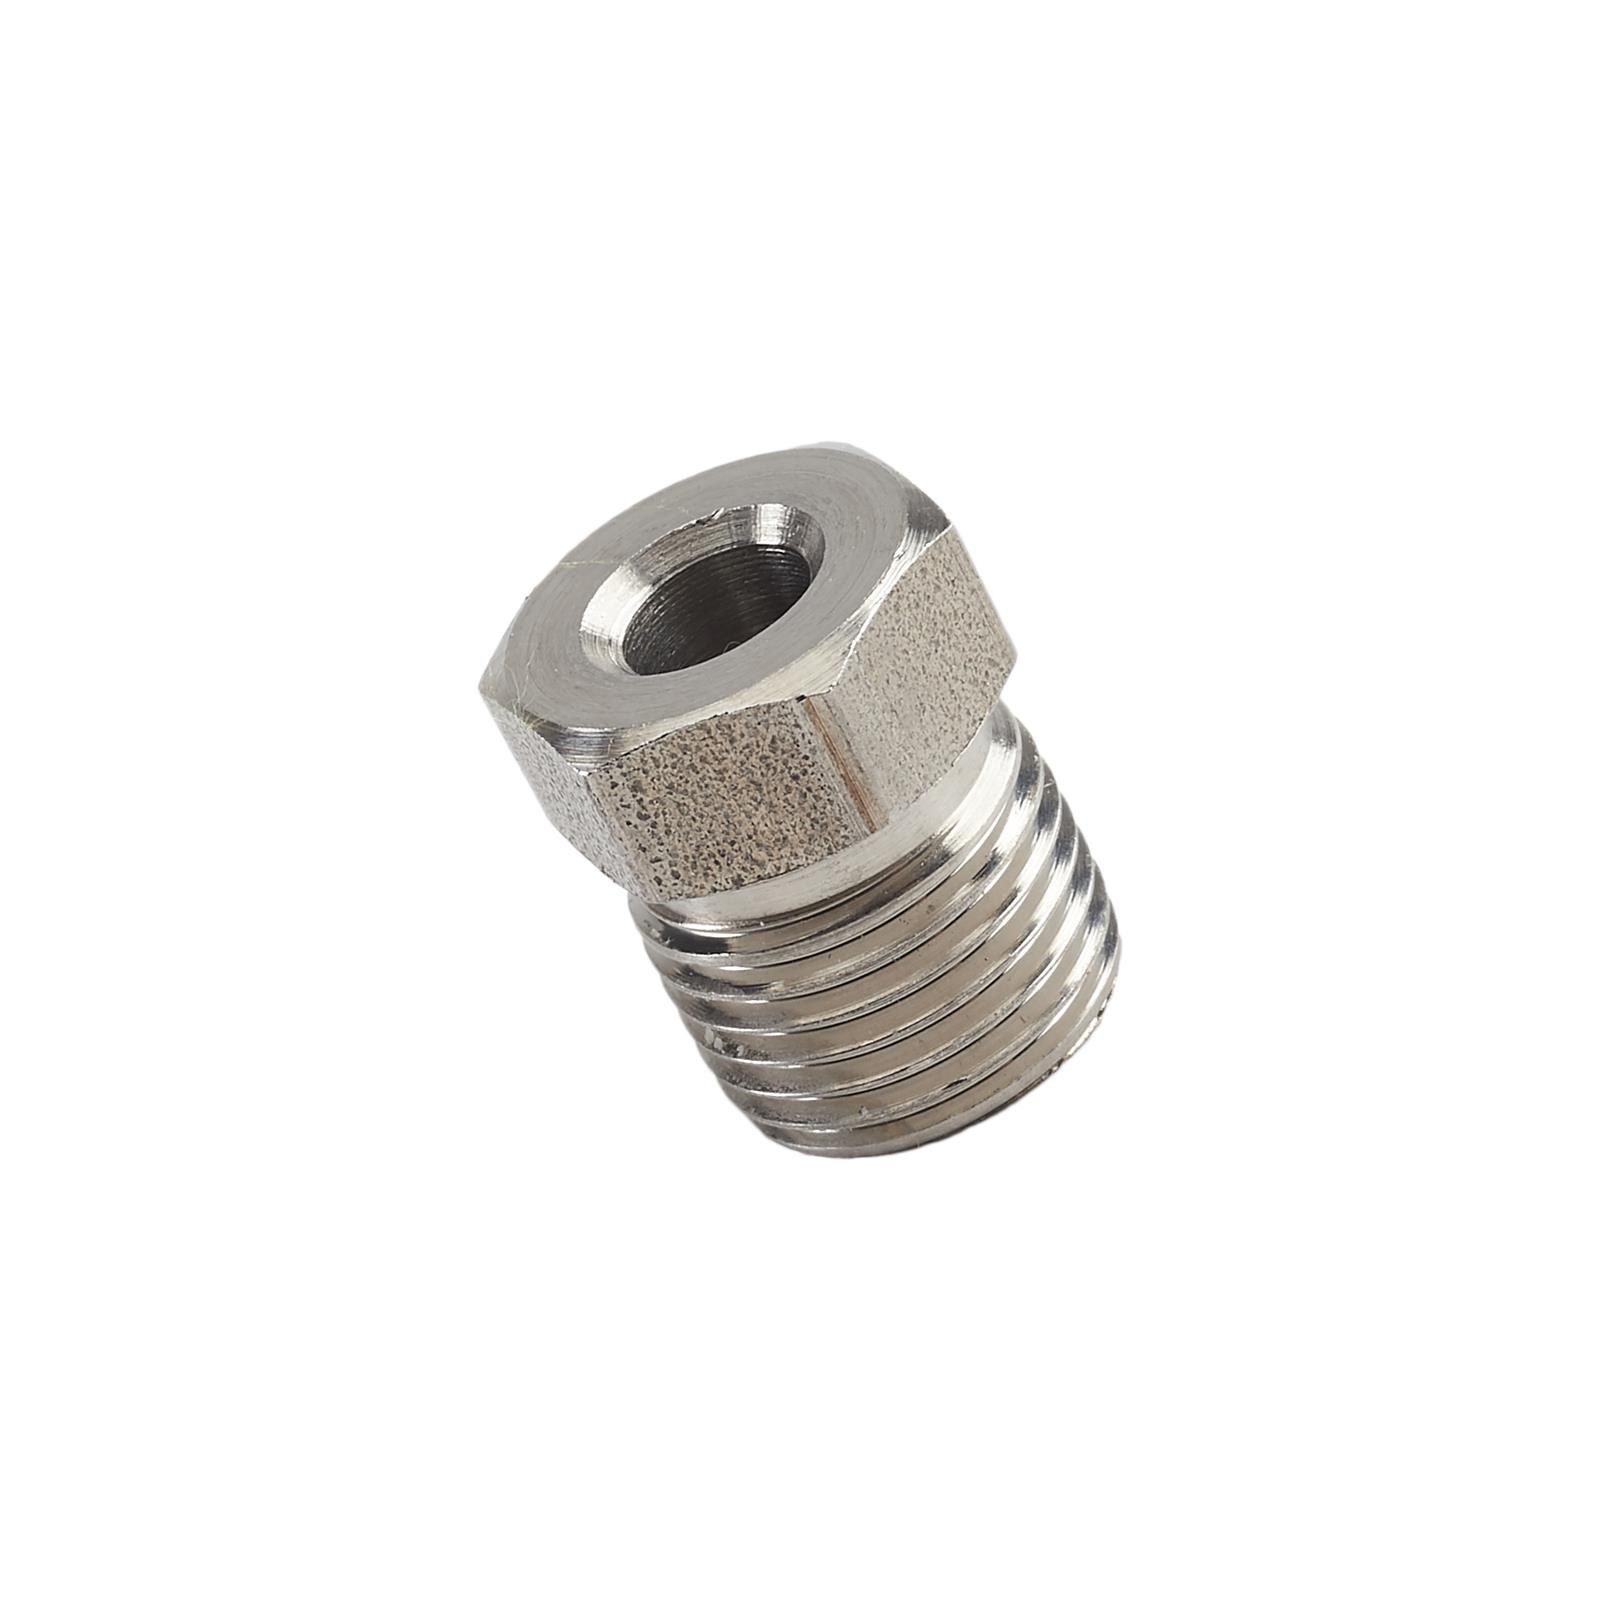 Inverted Flare Steel Tube Nuts 1//4 Line Pack of 10 SAE 7//16 X 24 thread Long